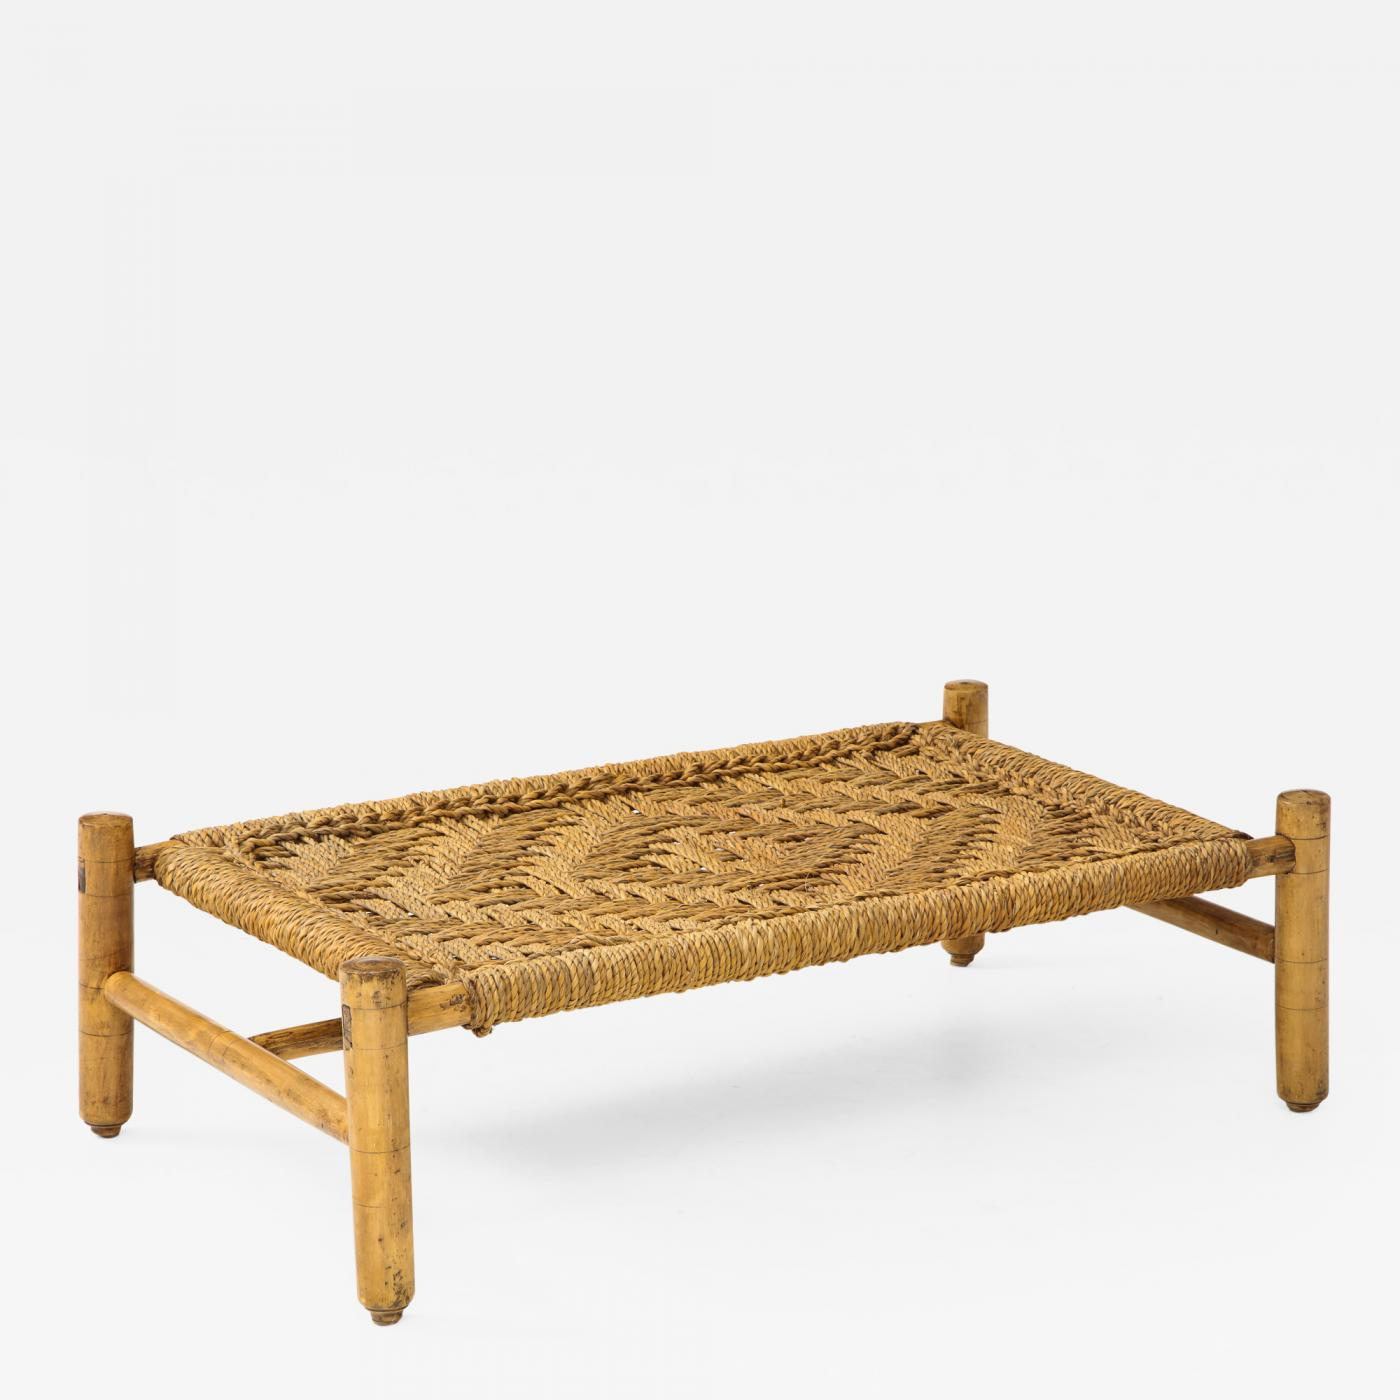 Incredible Adrien Audoux Frida Minet Audoux Minet Woven Rope And Wood Coffee Table Or Bench Creativecarmelina Interior Chair Design Creativecarmelinacom